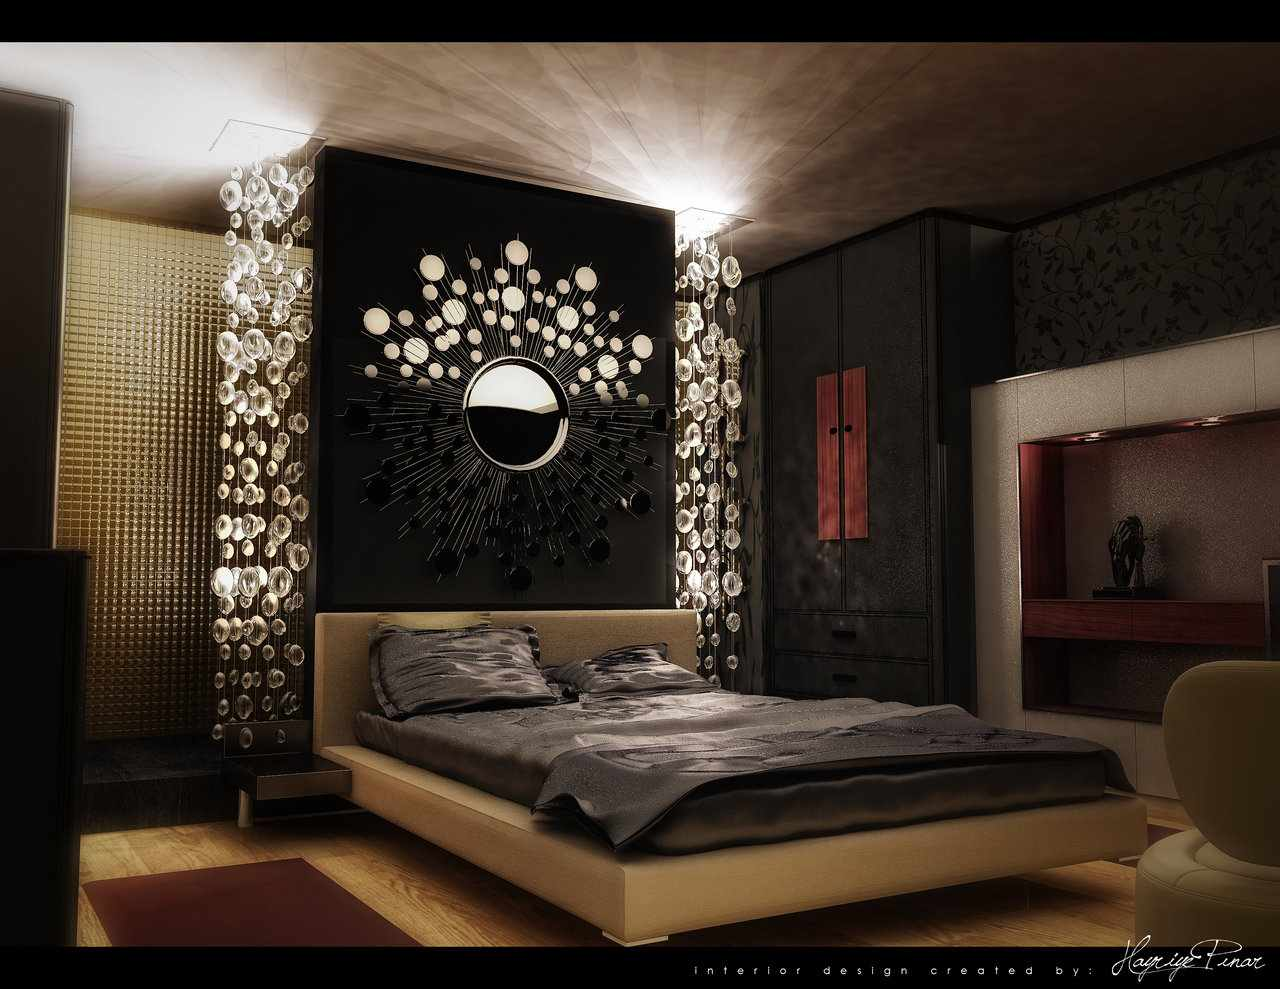 Ikea bedroom ideas ikea bedroom 2014 ideas exotic house interior designs - Ikea bedrooms ideas ...